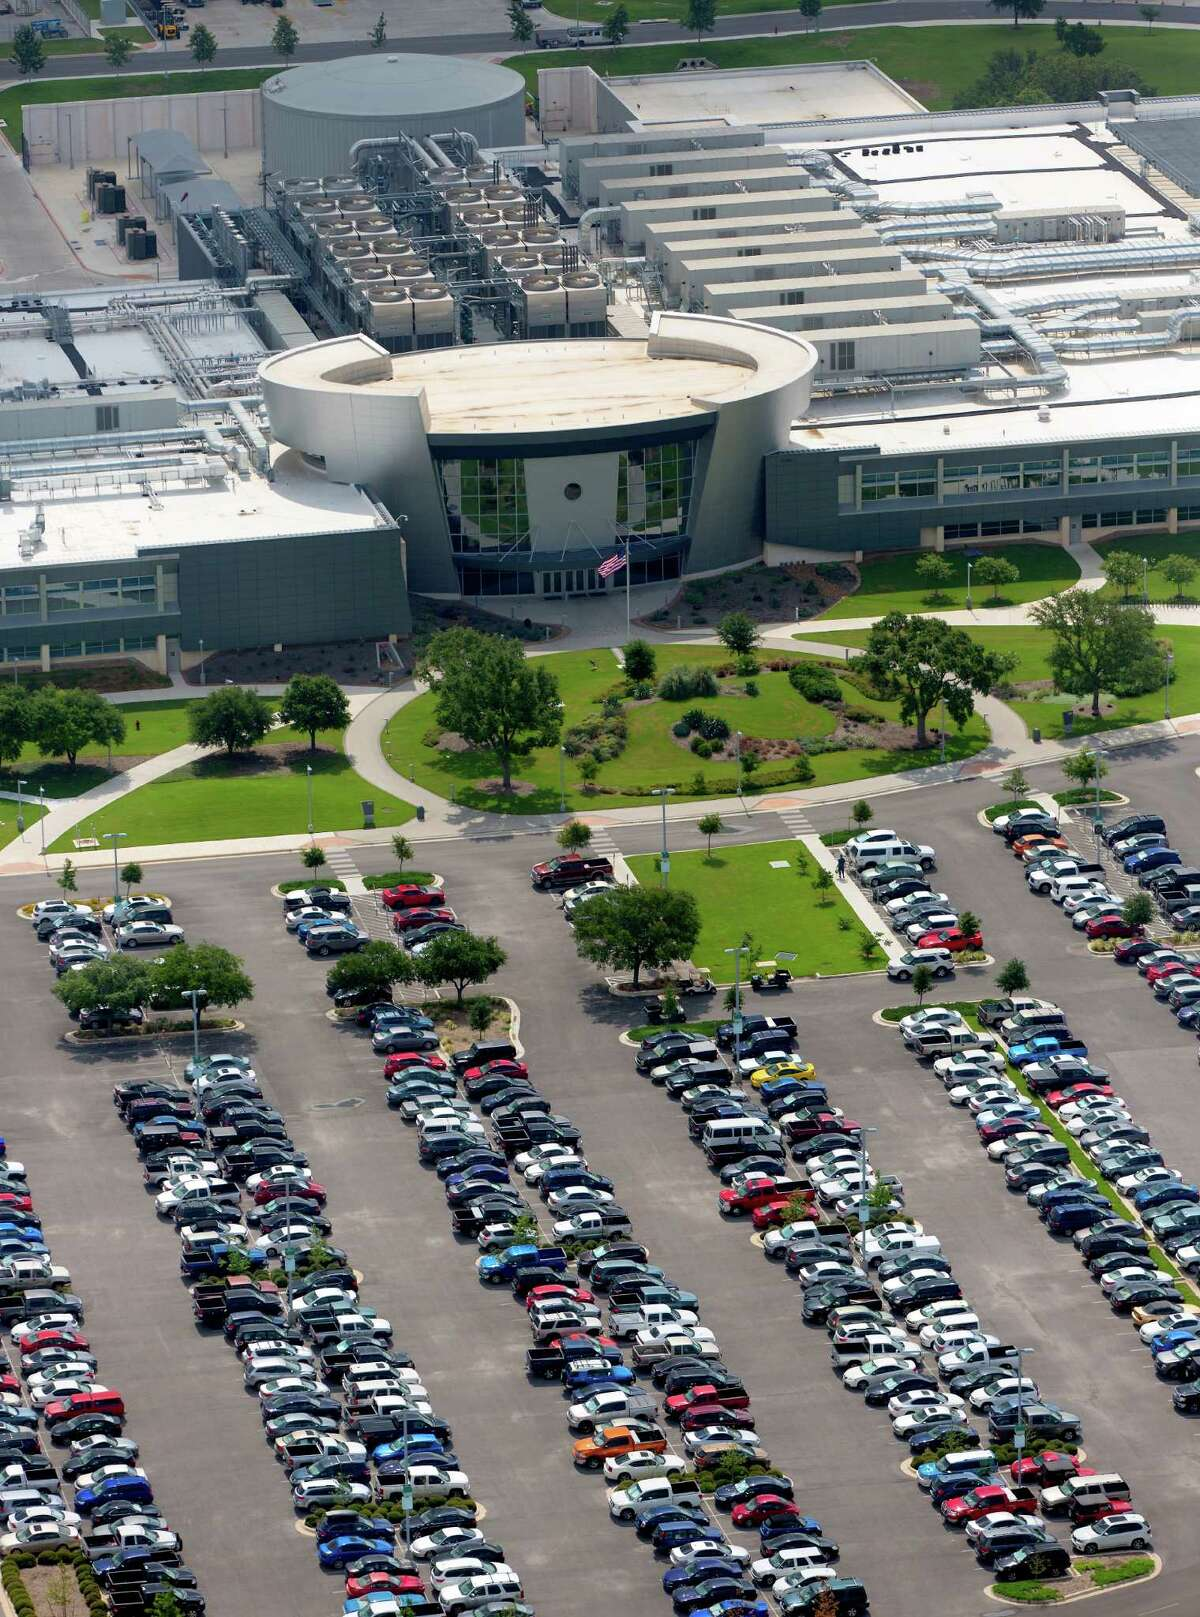 The National Security Agency building in San Antonio is seen in an aerial photo Thursday. The NSA may have invested as much as $300 million to overhaul the former Sony plant, which was closed in 2003, to turn it into a hub of classified activity.